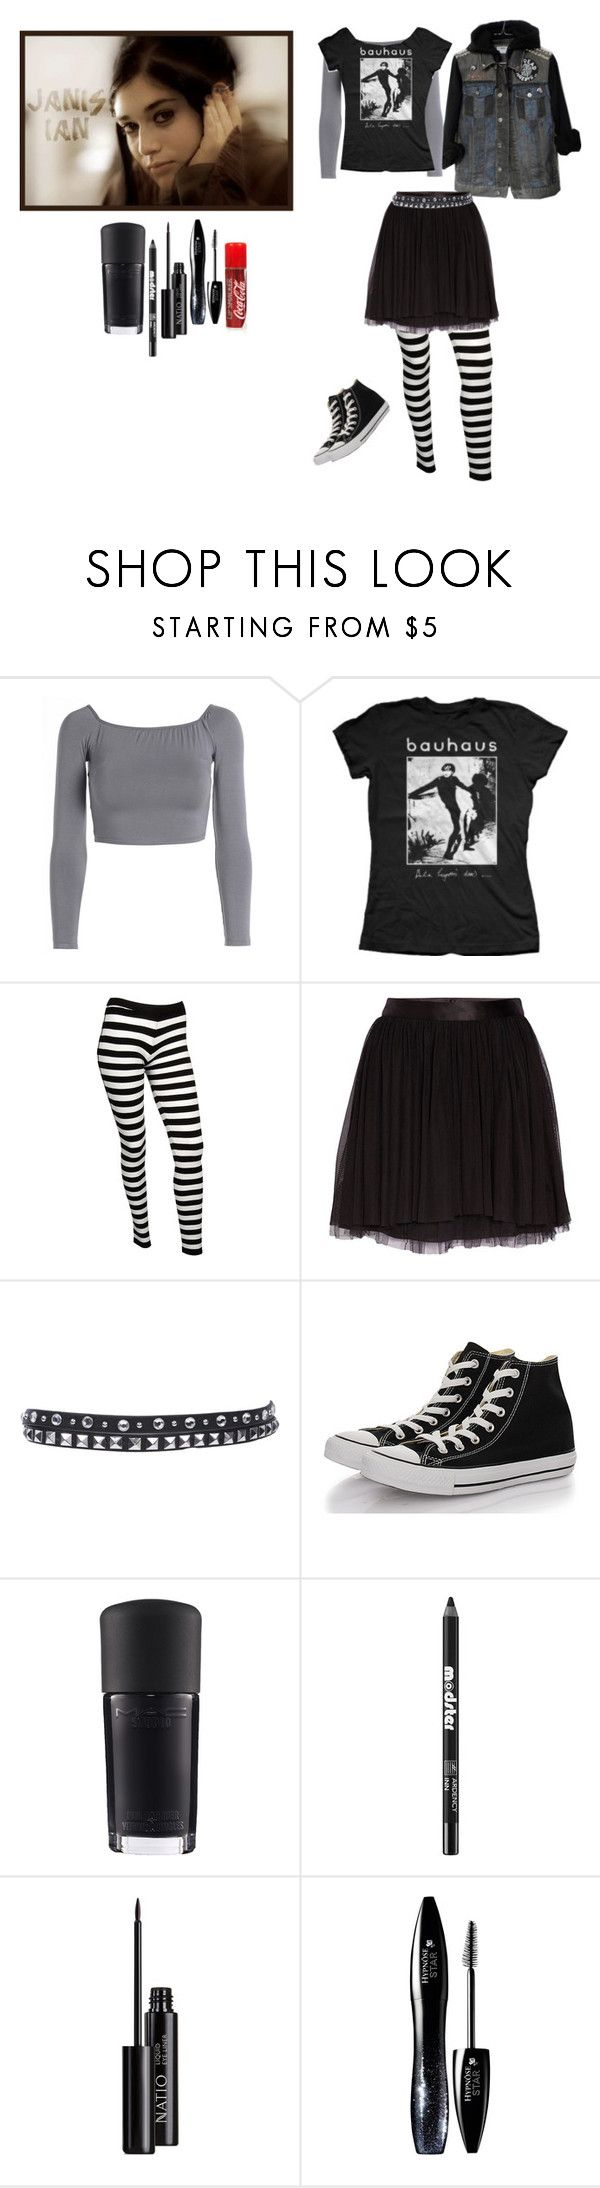 """""""Cosplay series: Janis Ian"""" by miss-morbid-13 ❤ liked on Polyvore featuring Janis, AX Paris, Bela, Forever 21, Morgan, MANGO, Converse, MAC Cosmetics, Ardency Inn and Natio"""